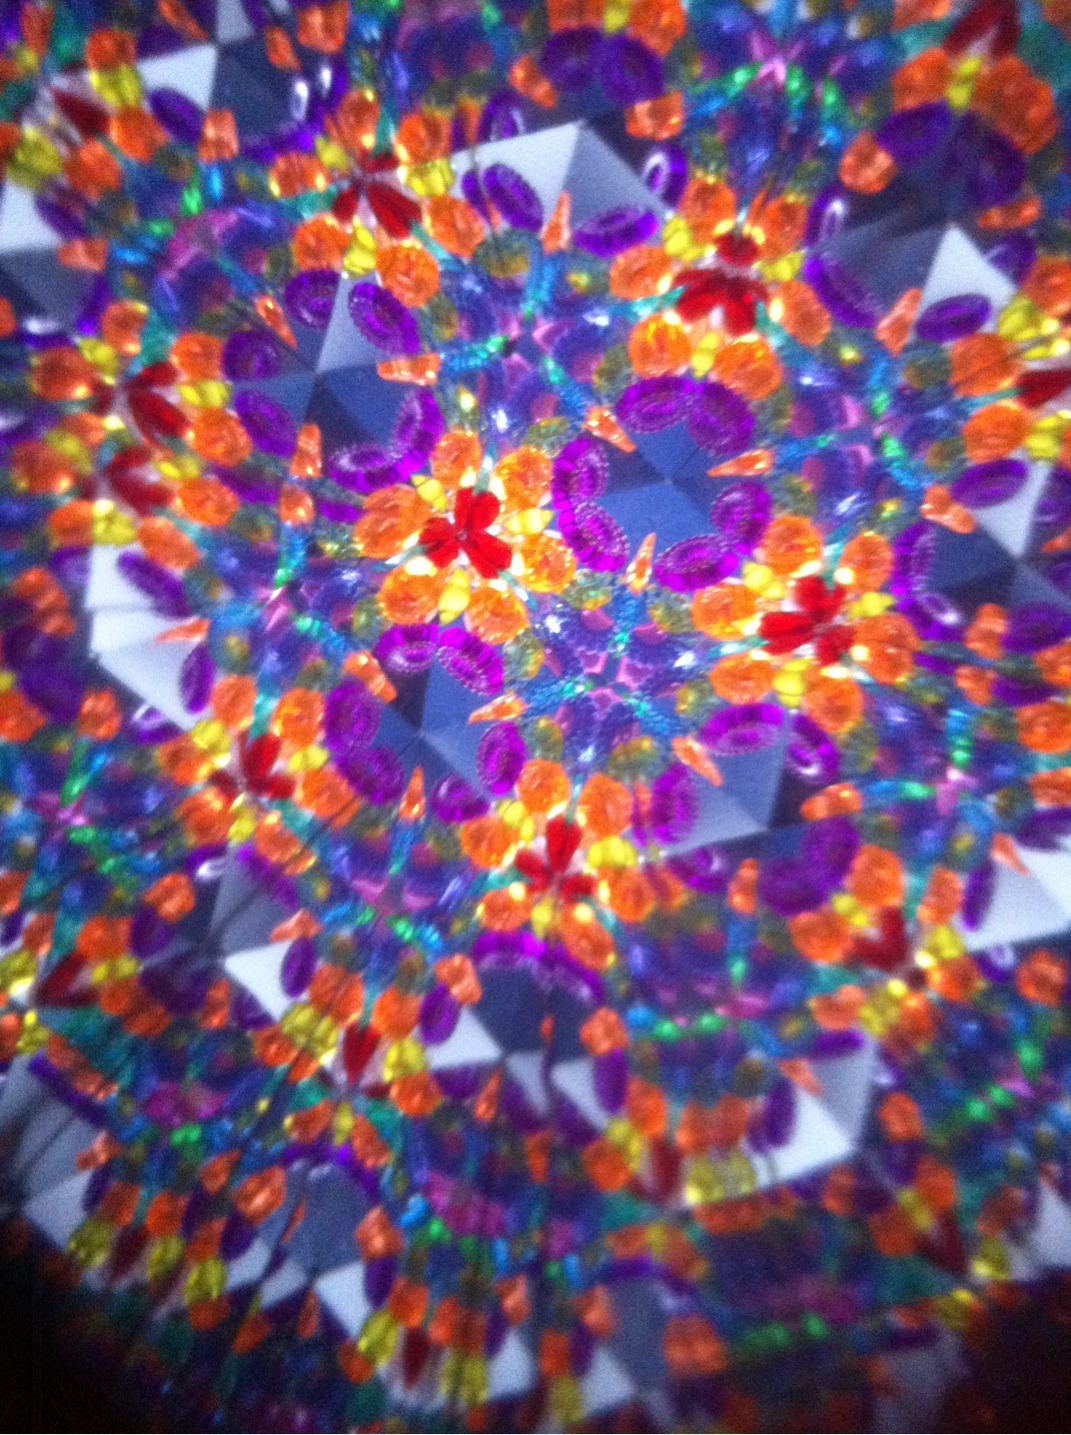 Today my boyfriend bought me a kaleidoscope.